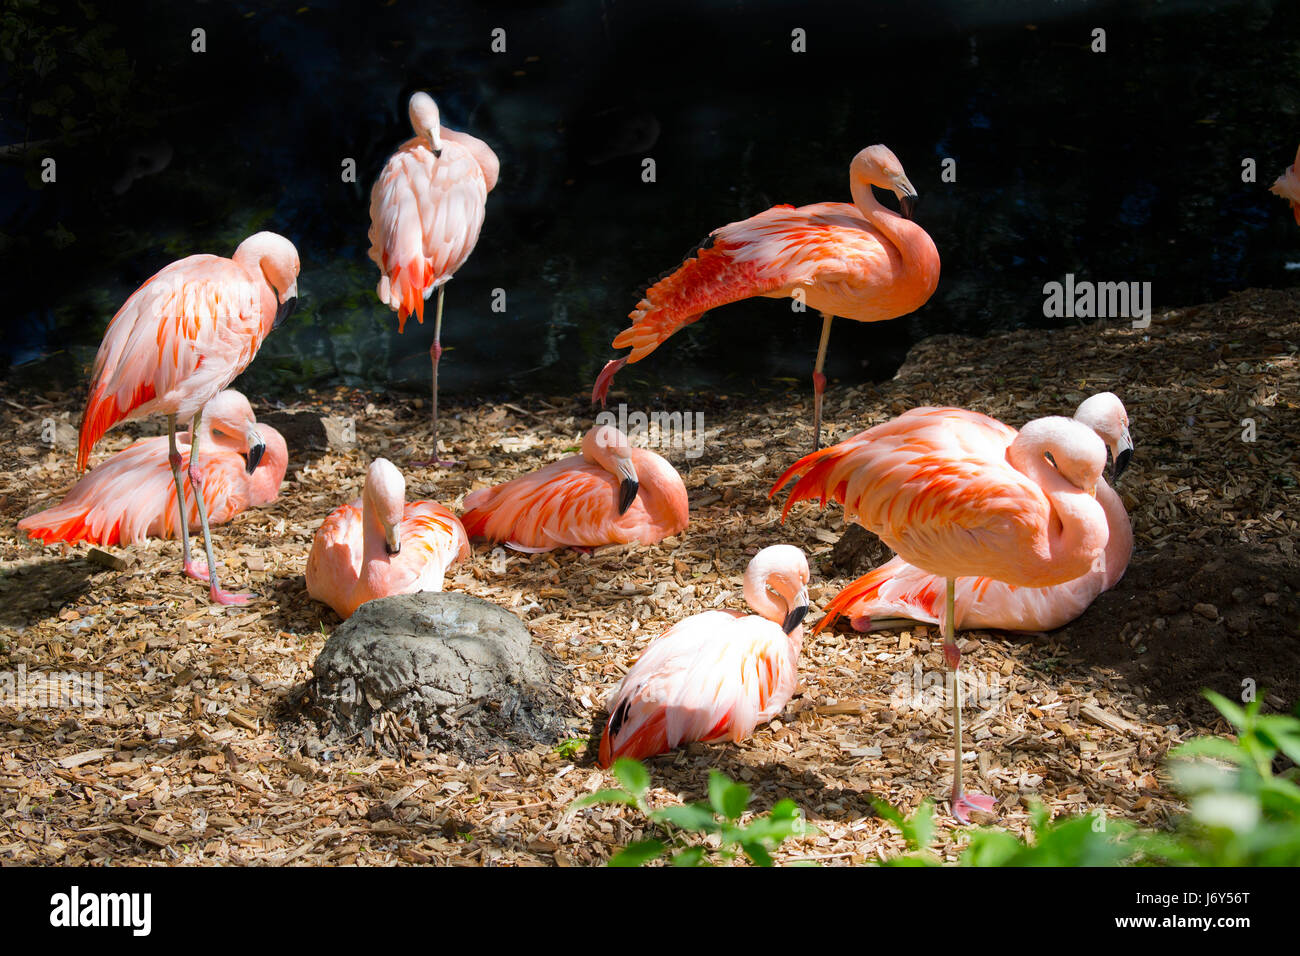 A group of Chilean flamingos relaxing in the late afternoon sunshine - Stock Image